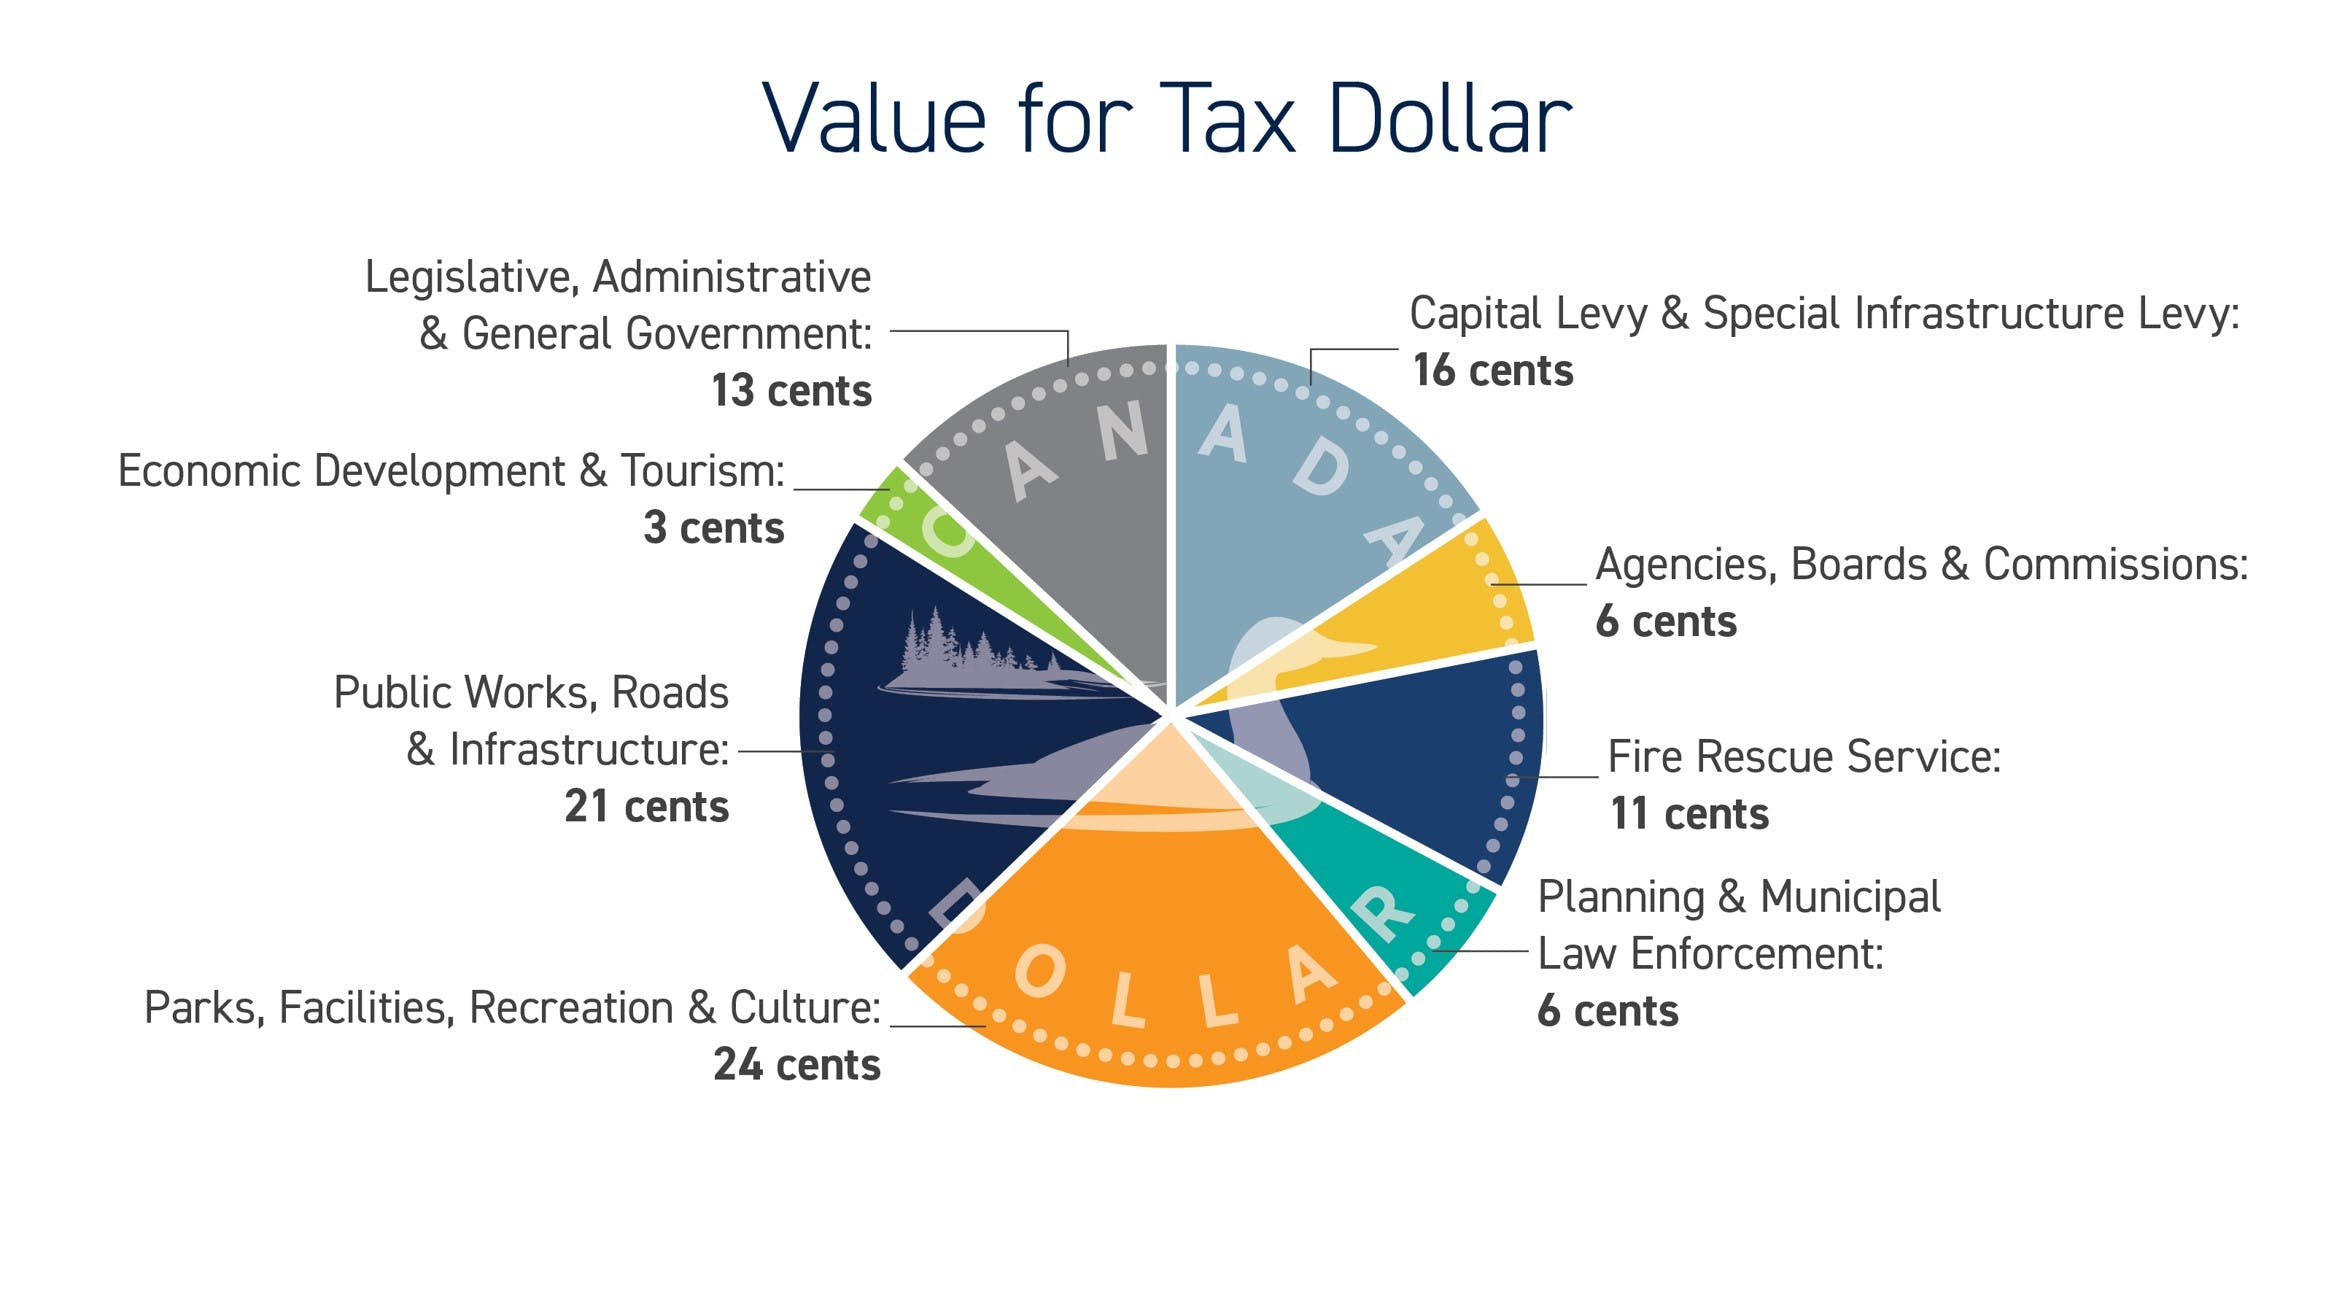 Value for Tax Dollar